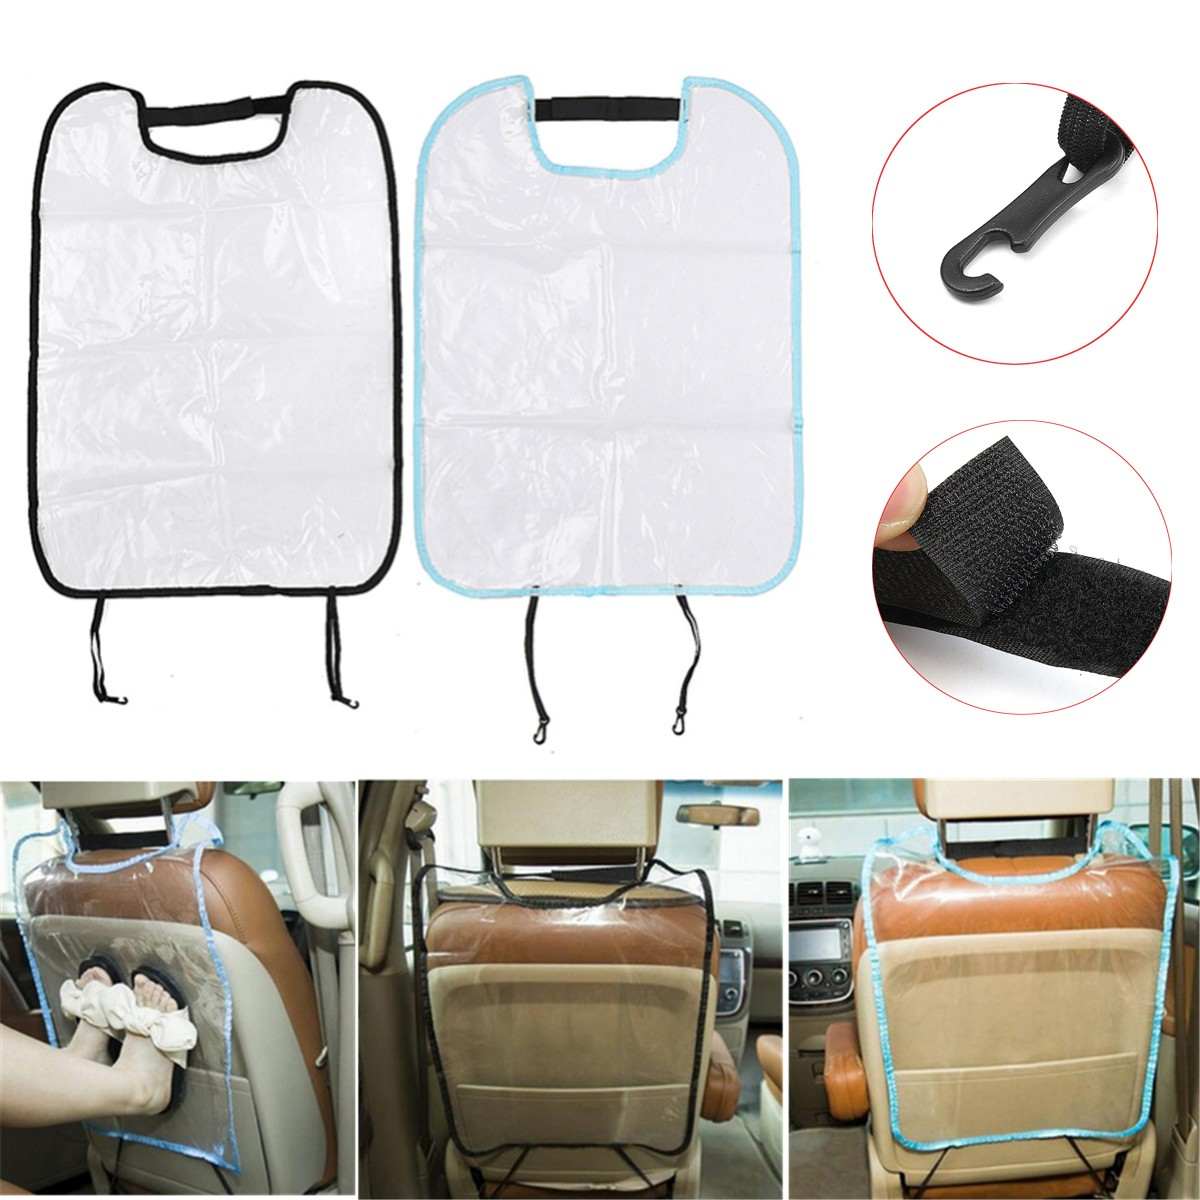 Car Auto Seat Back Protector Cover Car Seat Cover For Children Kids Kick Mat Mud Clean Waterproof Anti Child Kick Pad